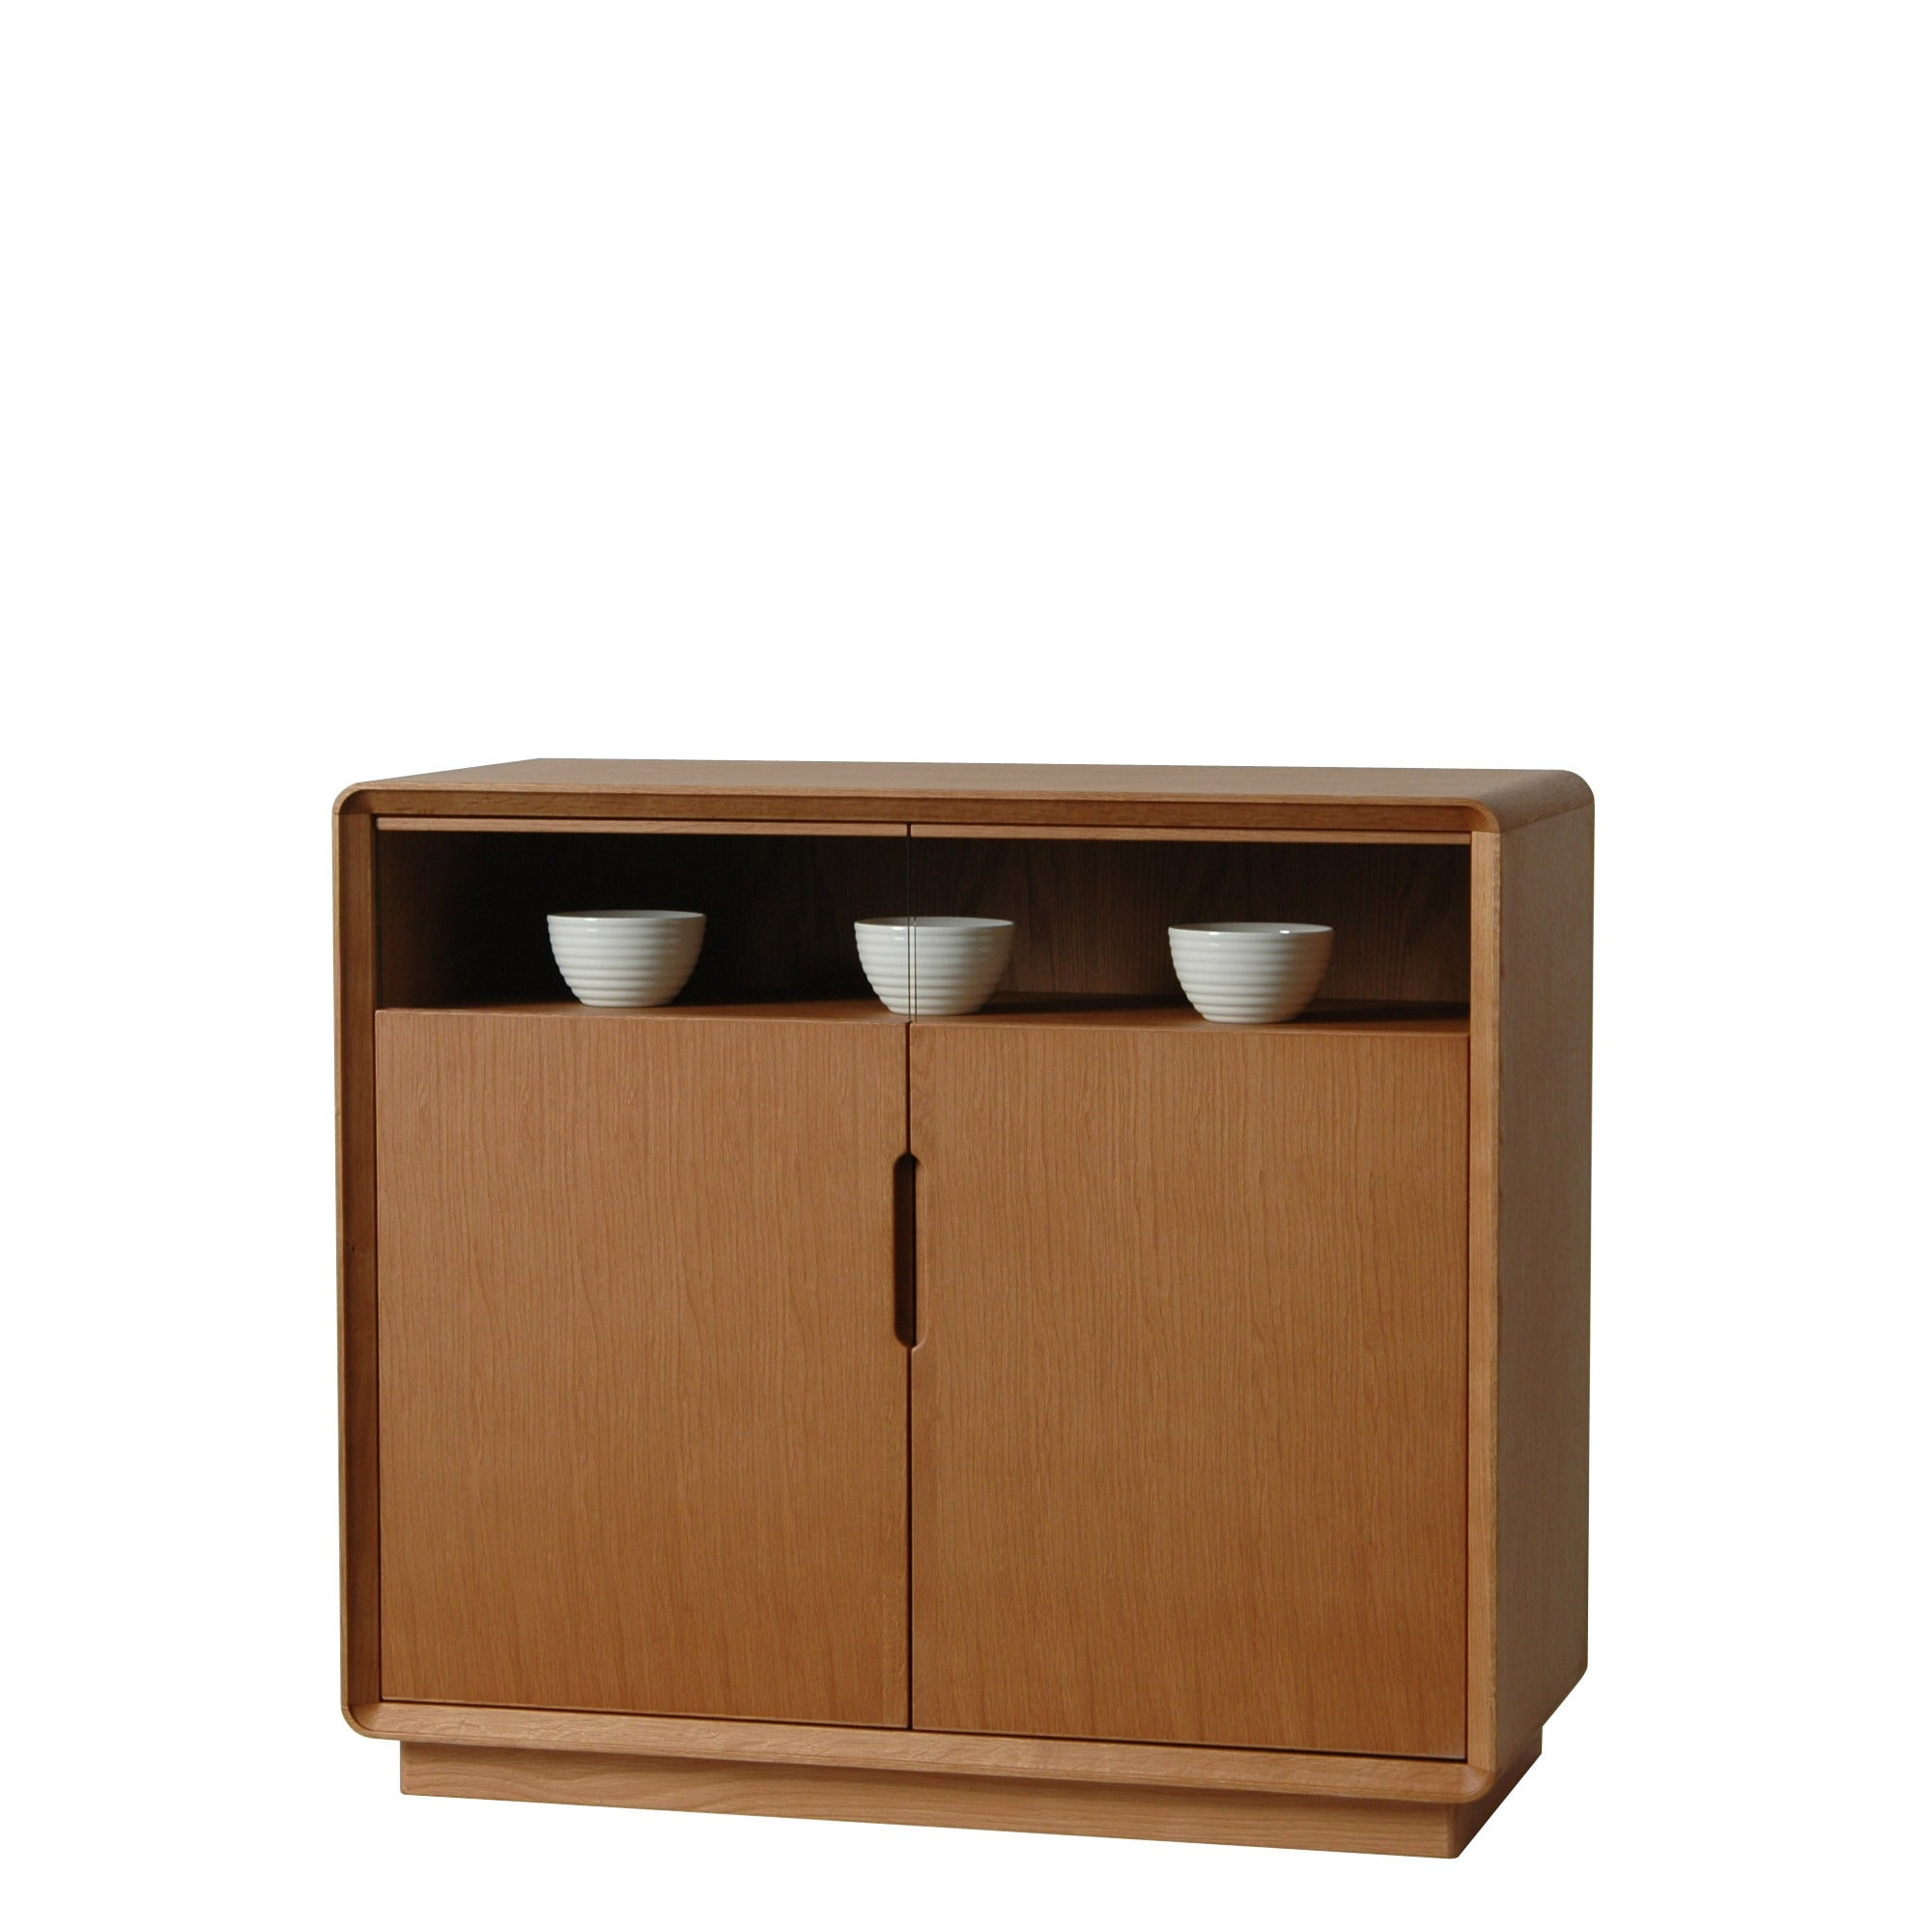 Nissin - ACCENT Sideboard Two Doors